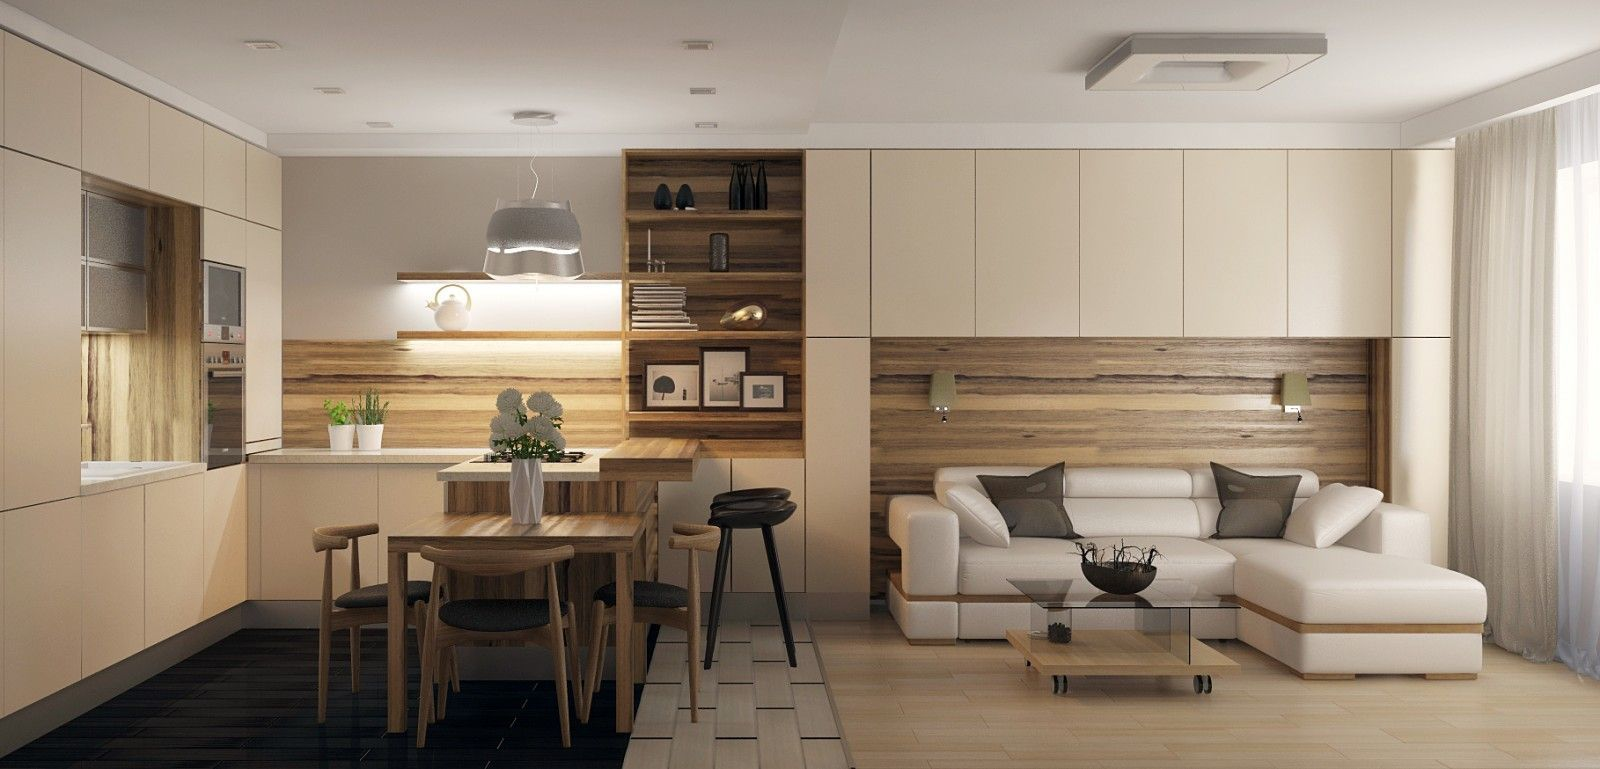 Kitchen in Living Room with Bar Counter. Original Interior Ideas. Creamy space of the minimalistic interior